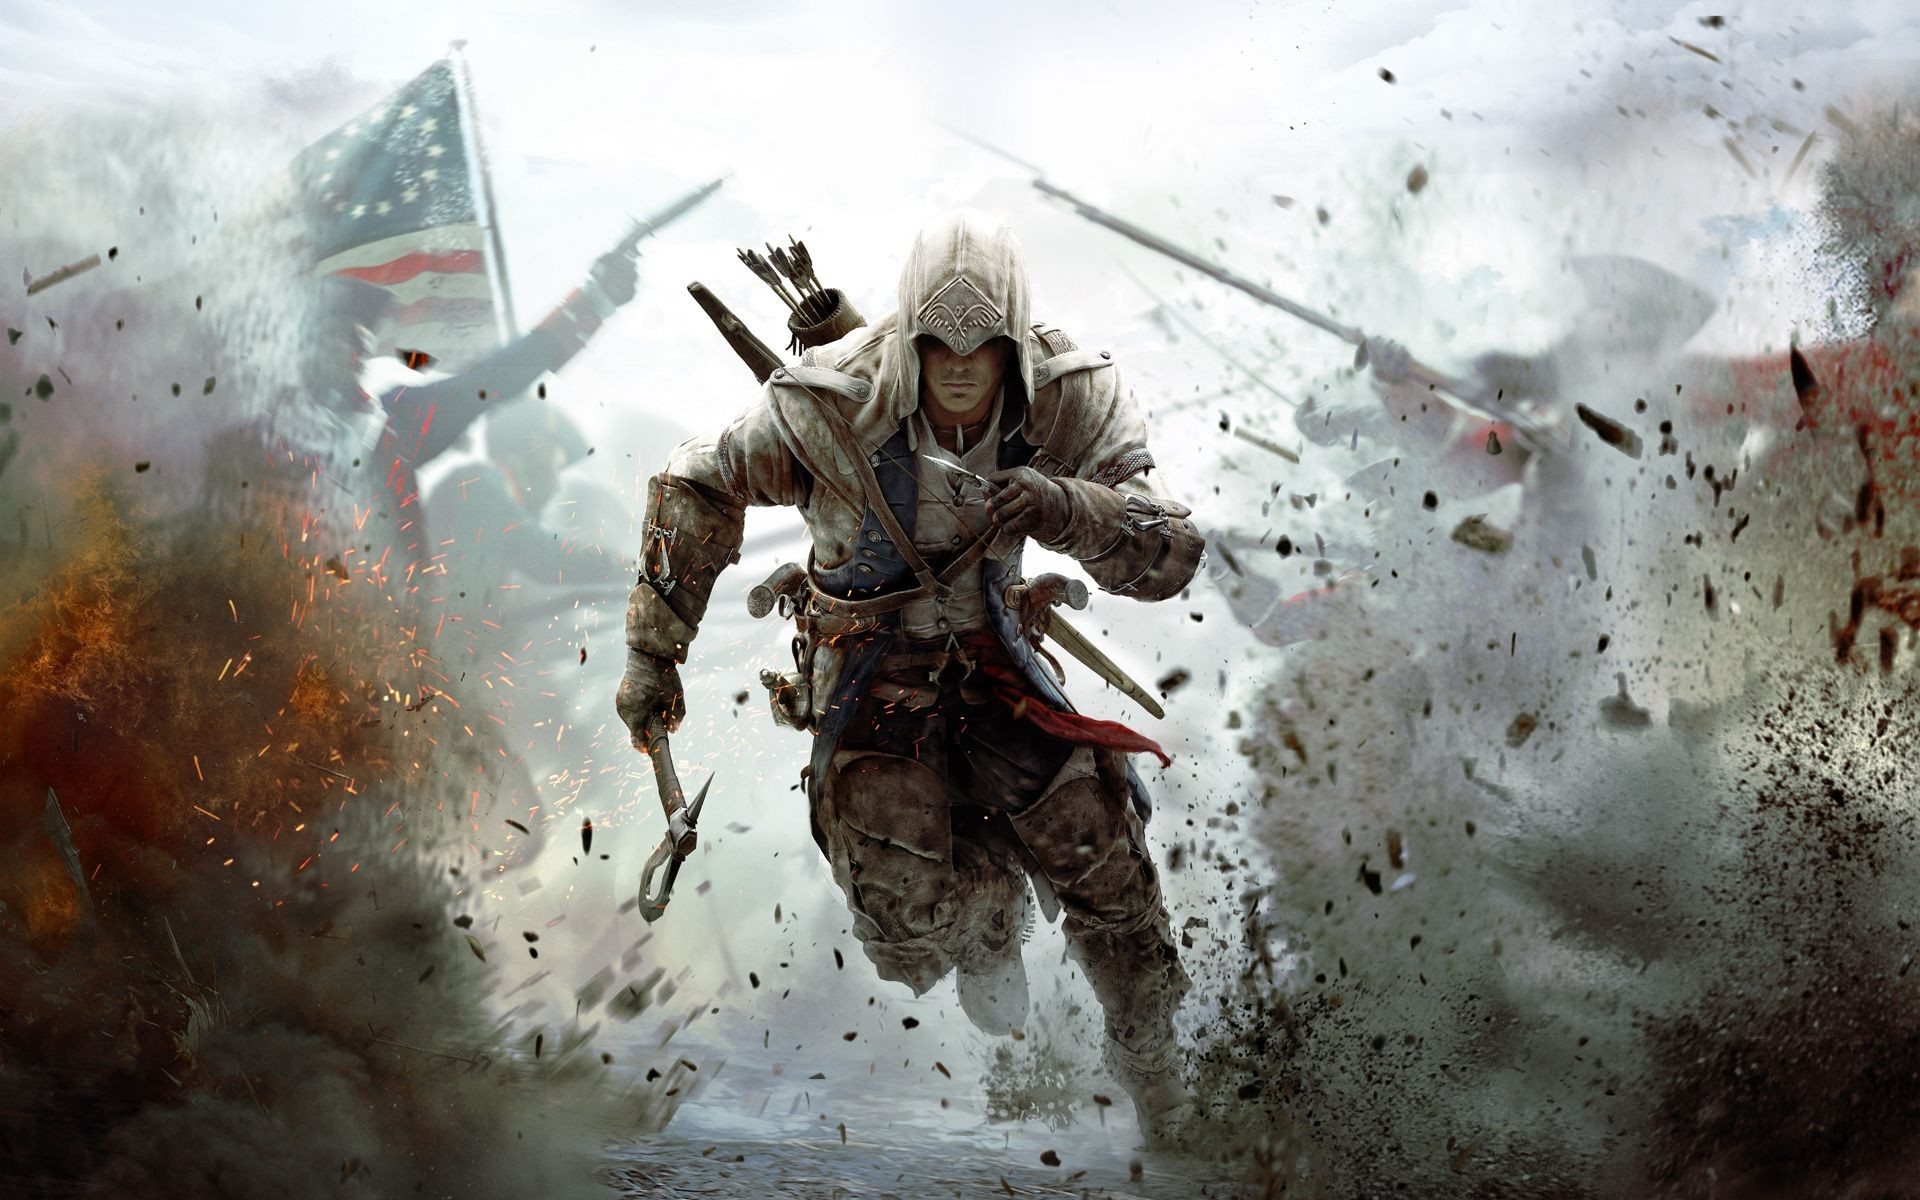 asasin creed 3 Connor 2012